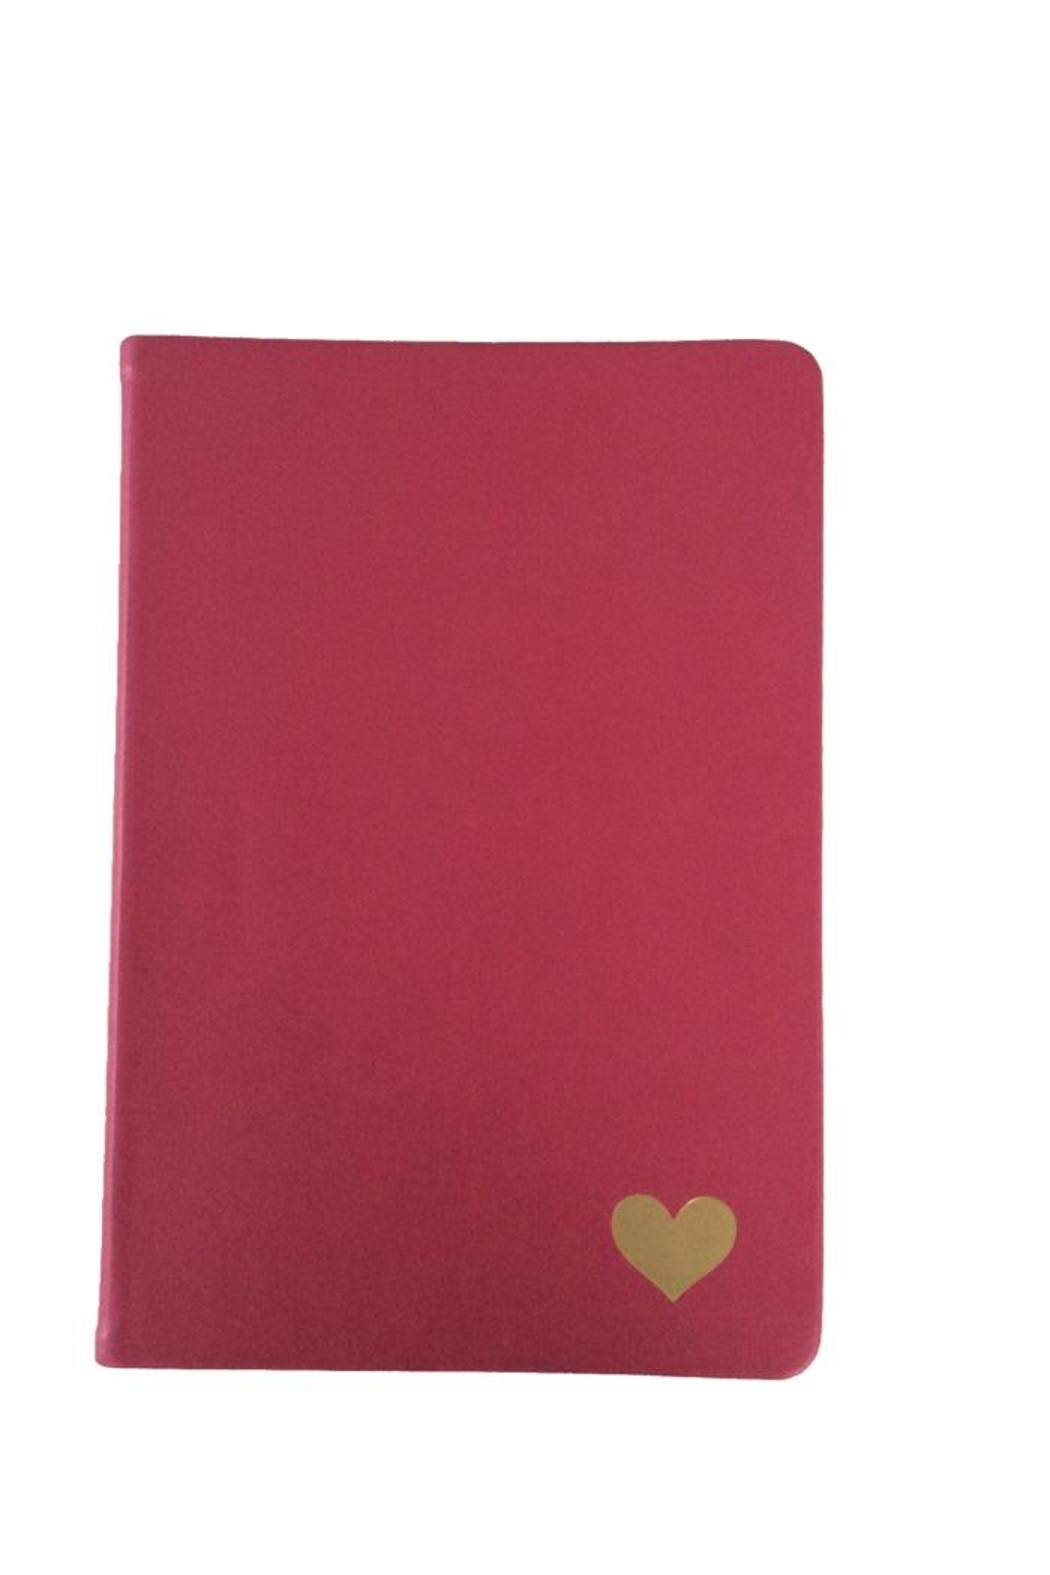 tu-anh boutique Pink Heart Journal - Main Image